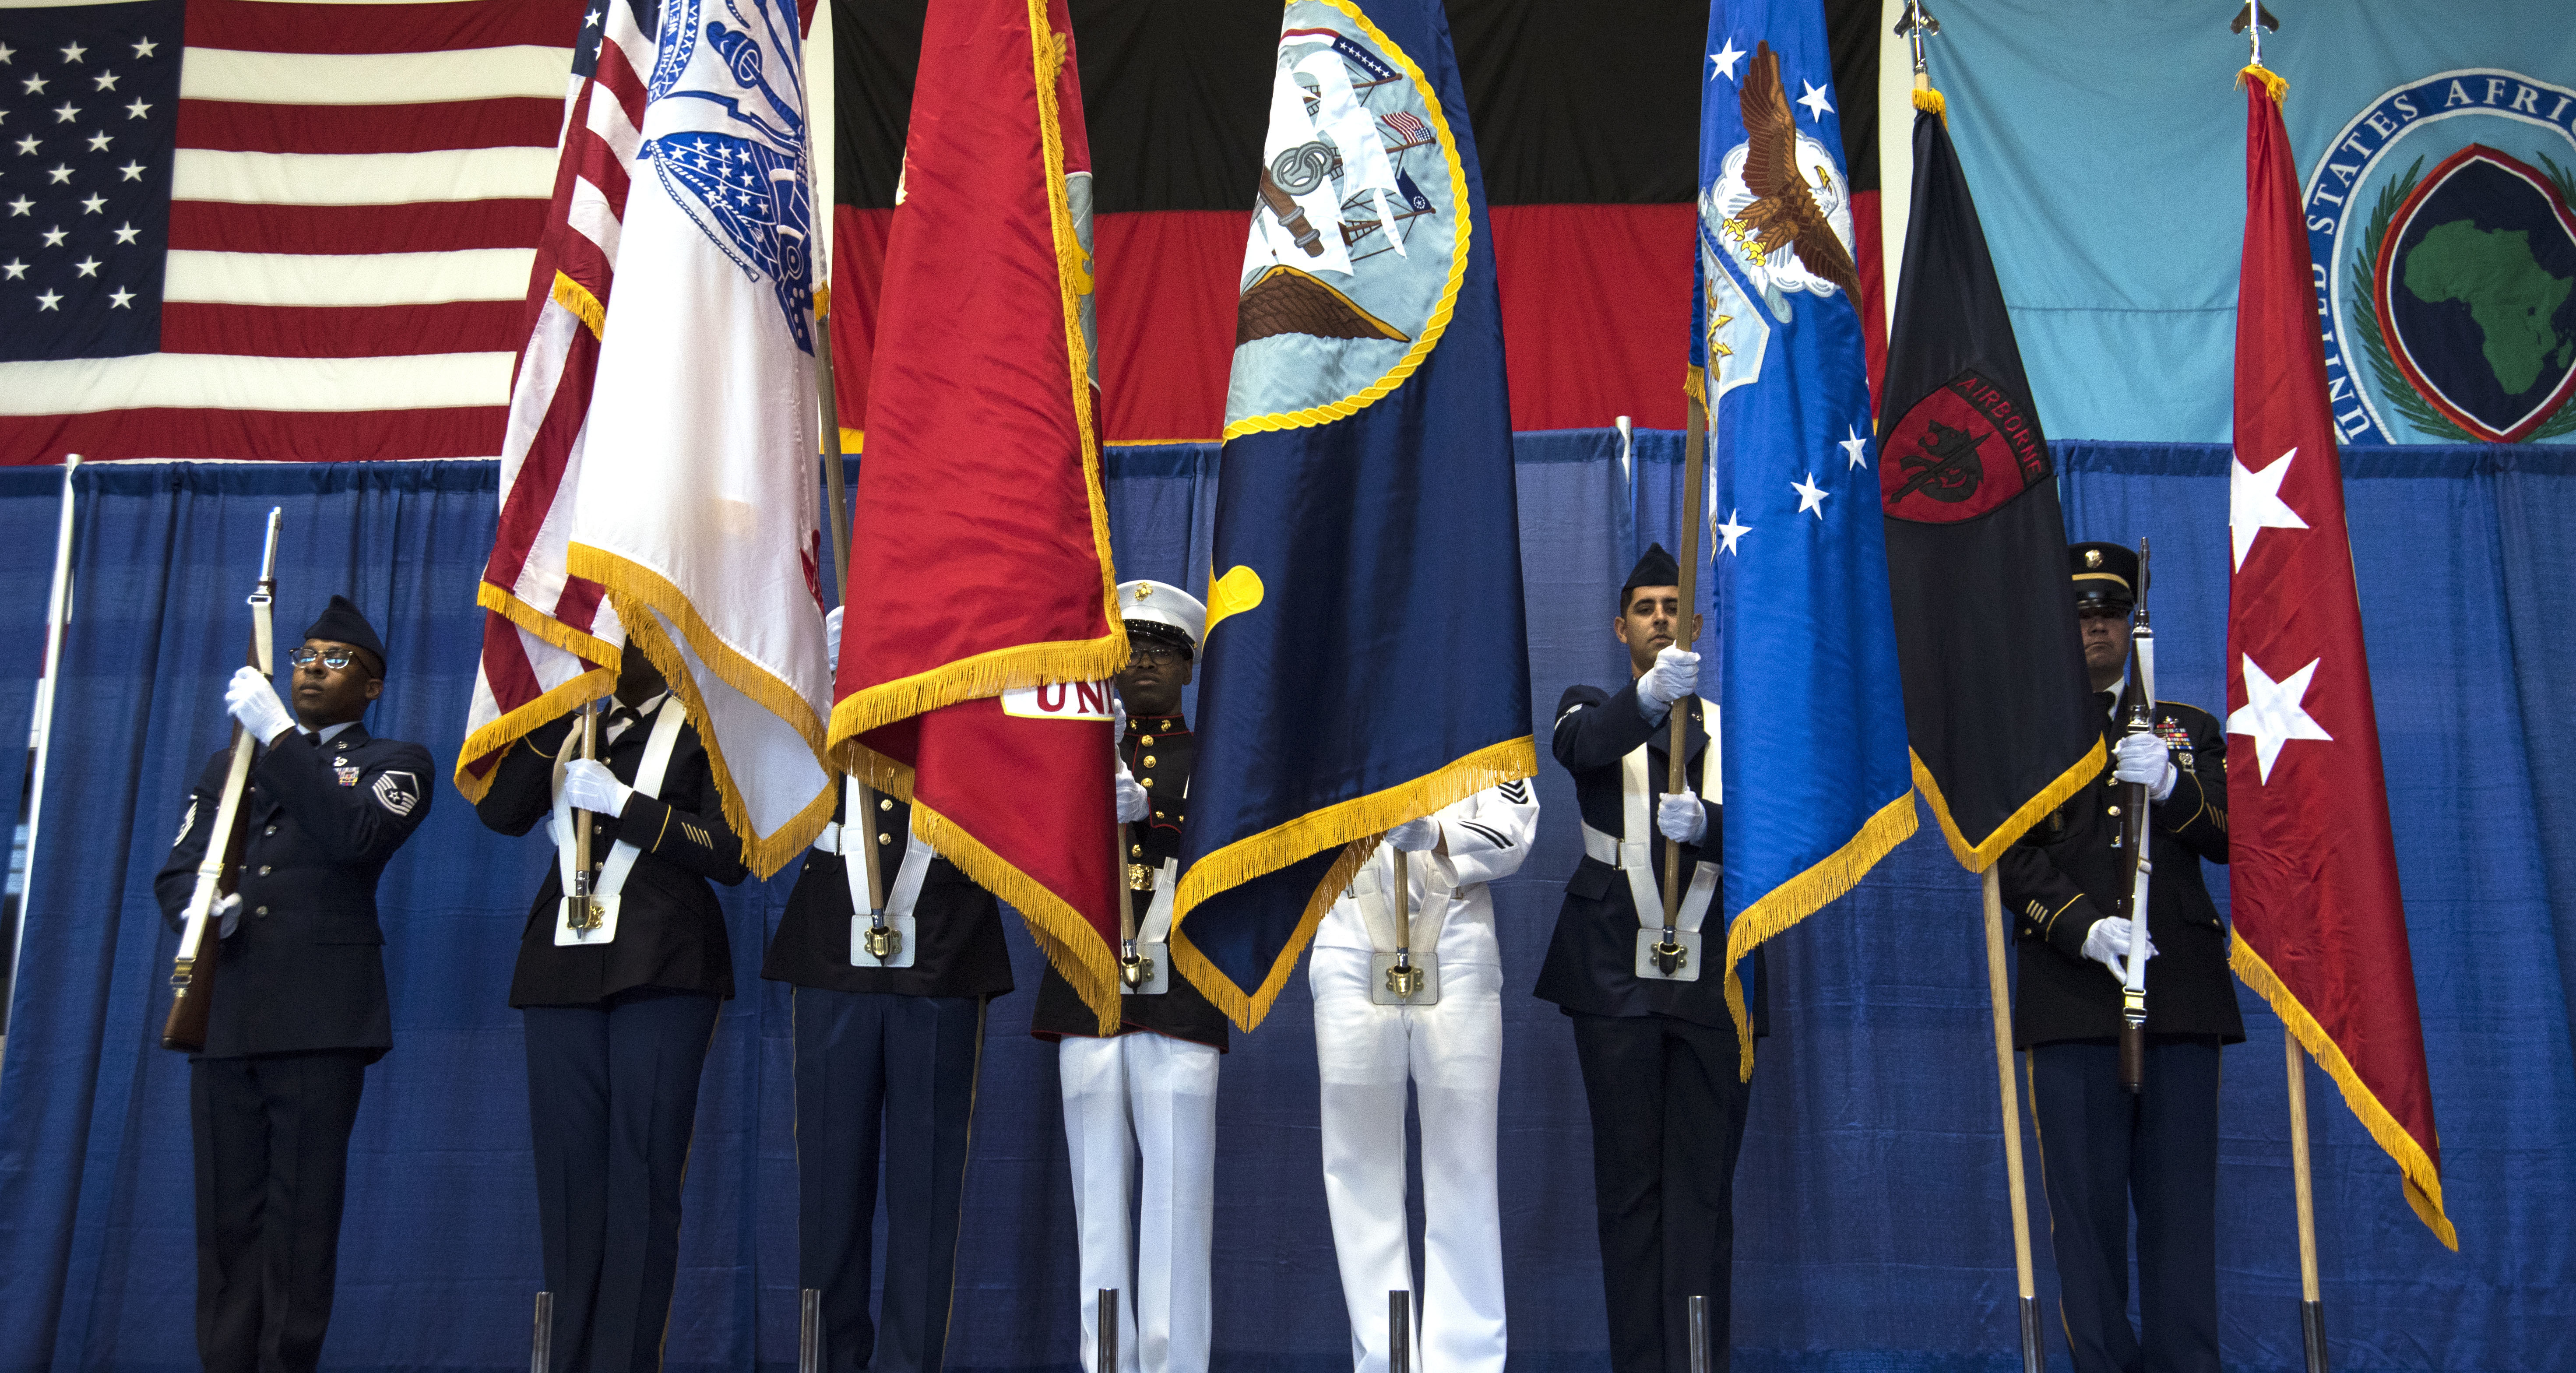 The colors are displayed during a change of command ceremony for Special Operations Command Africa at Kelley Barracks, Stuttgart, Germany, June 28, 2019. Special Operations Command Africa supports U.S. Africa Command by counter violent extremist organizations, building the military capacity of key partners in Africa and protecting U.S. personnel and facilities. (U.S. Navy photo by Mass Communication Specialist 1st Class Christopher Hurd/Released)